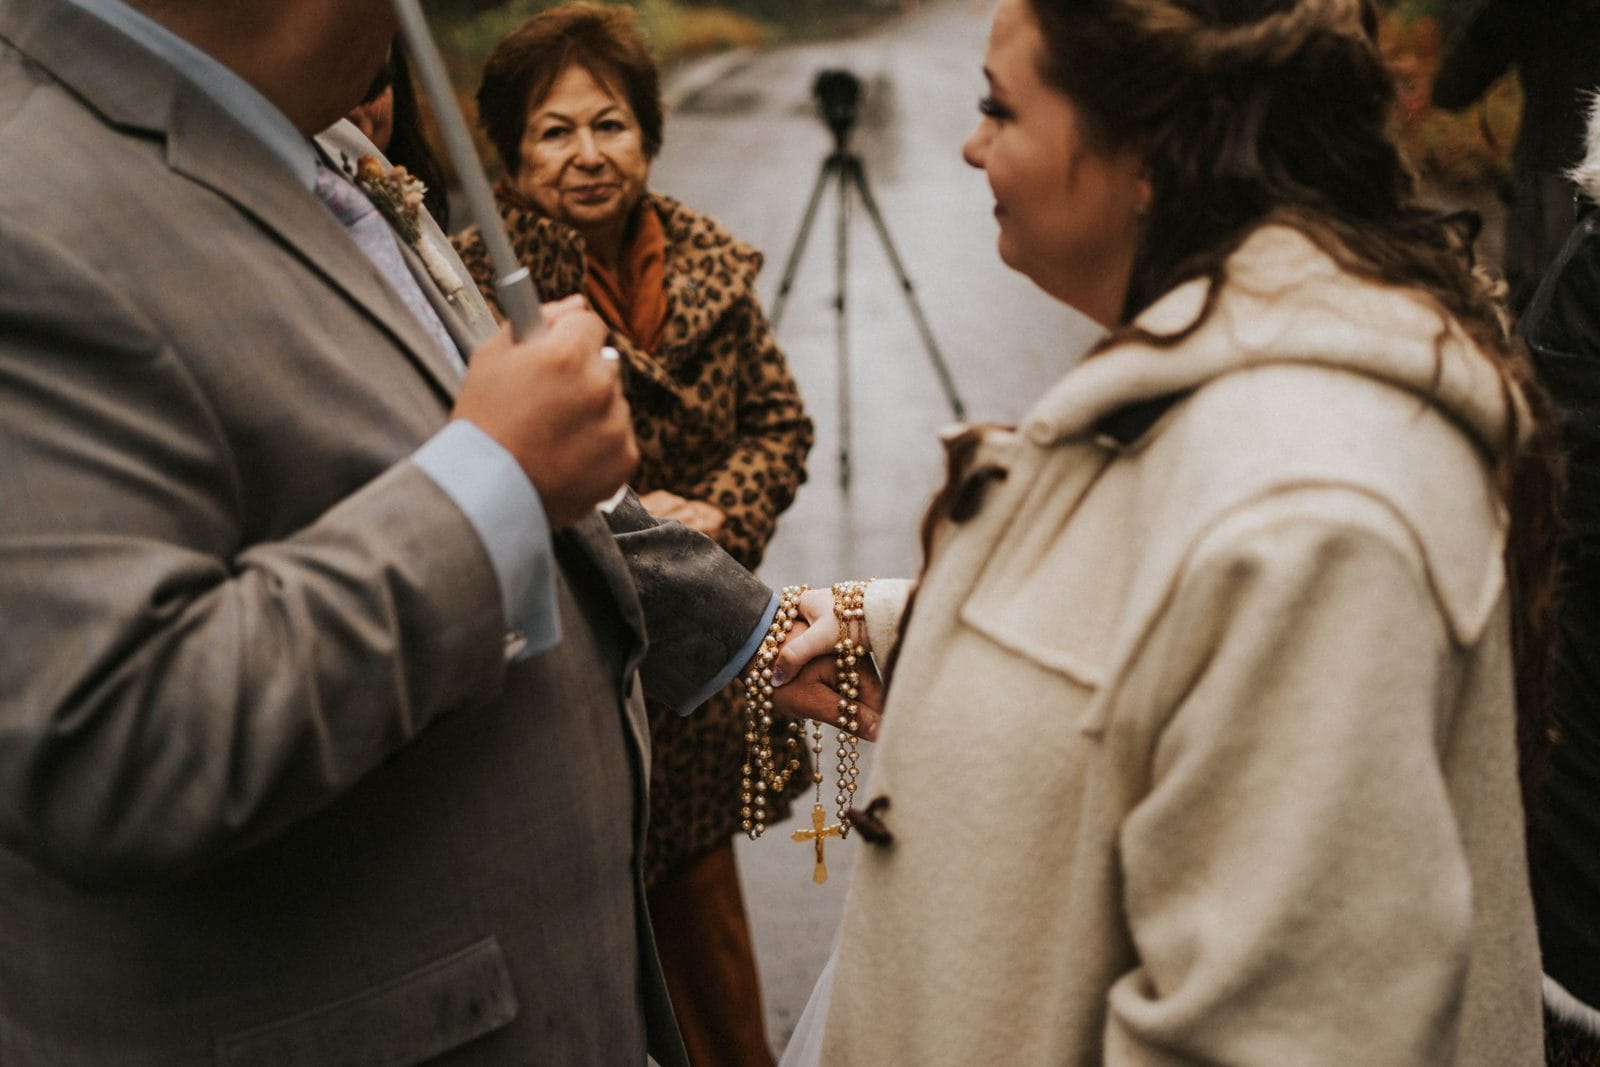 bride and groom holding rosary beads at ceremony